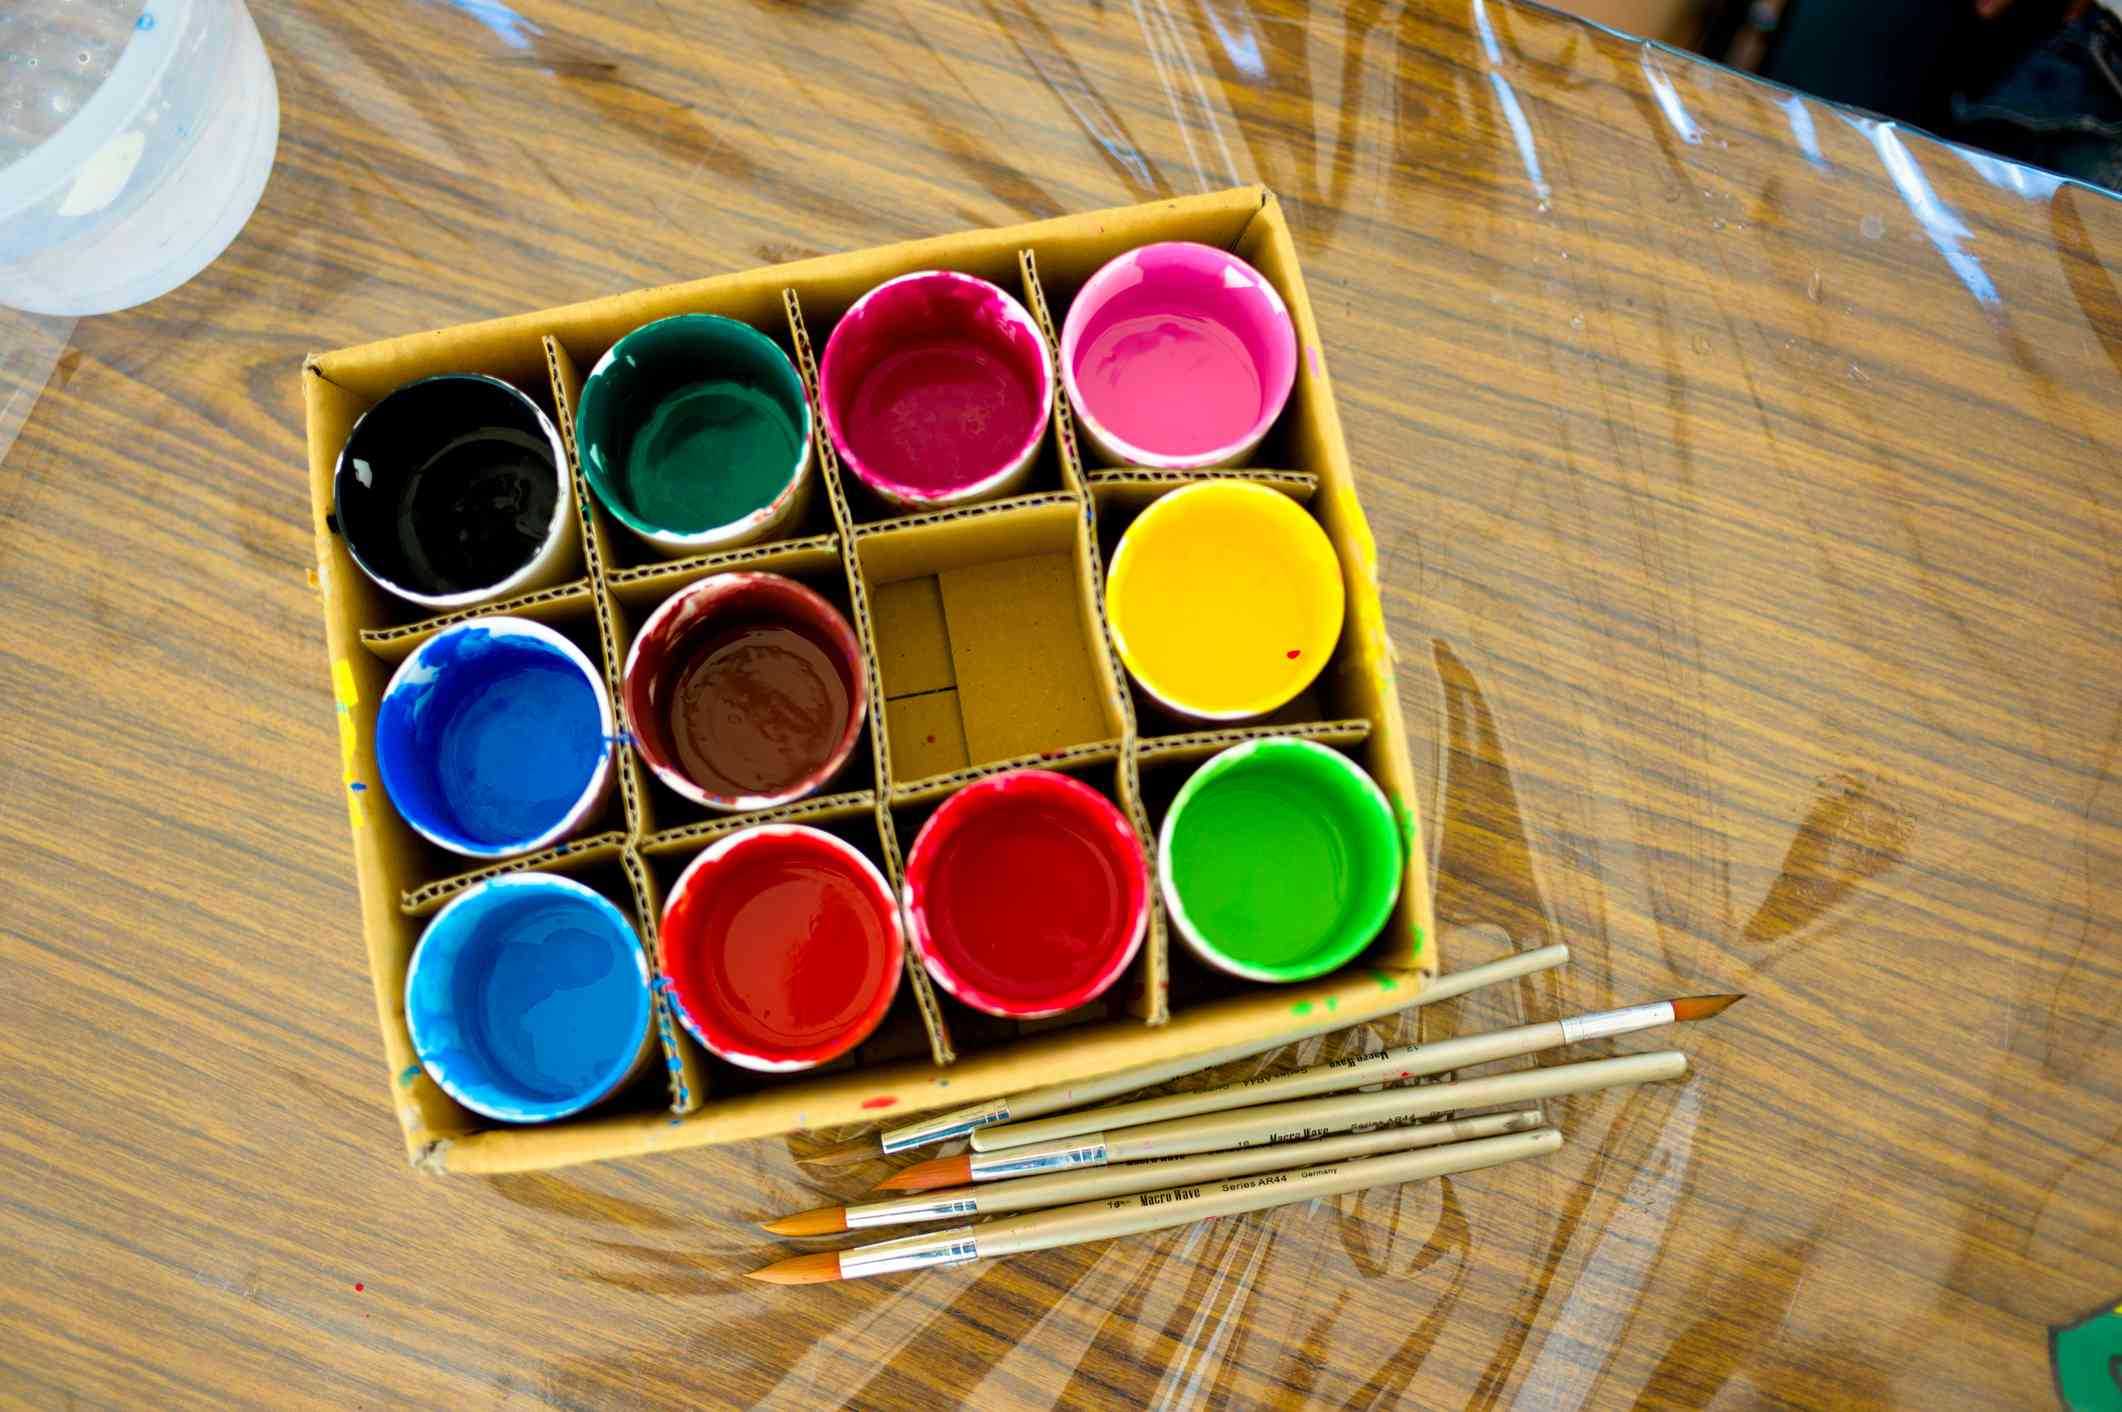 Cups of paint in a cardboard box